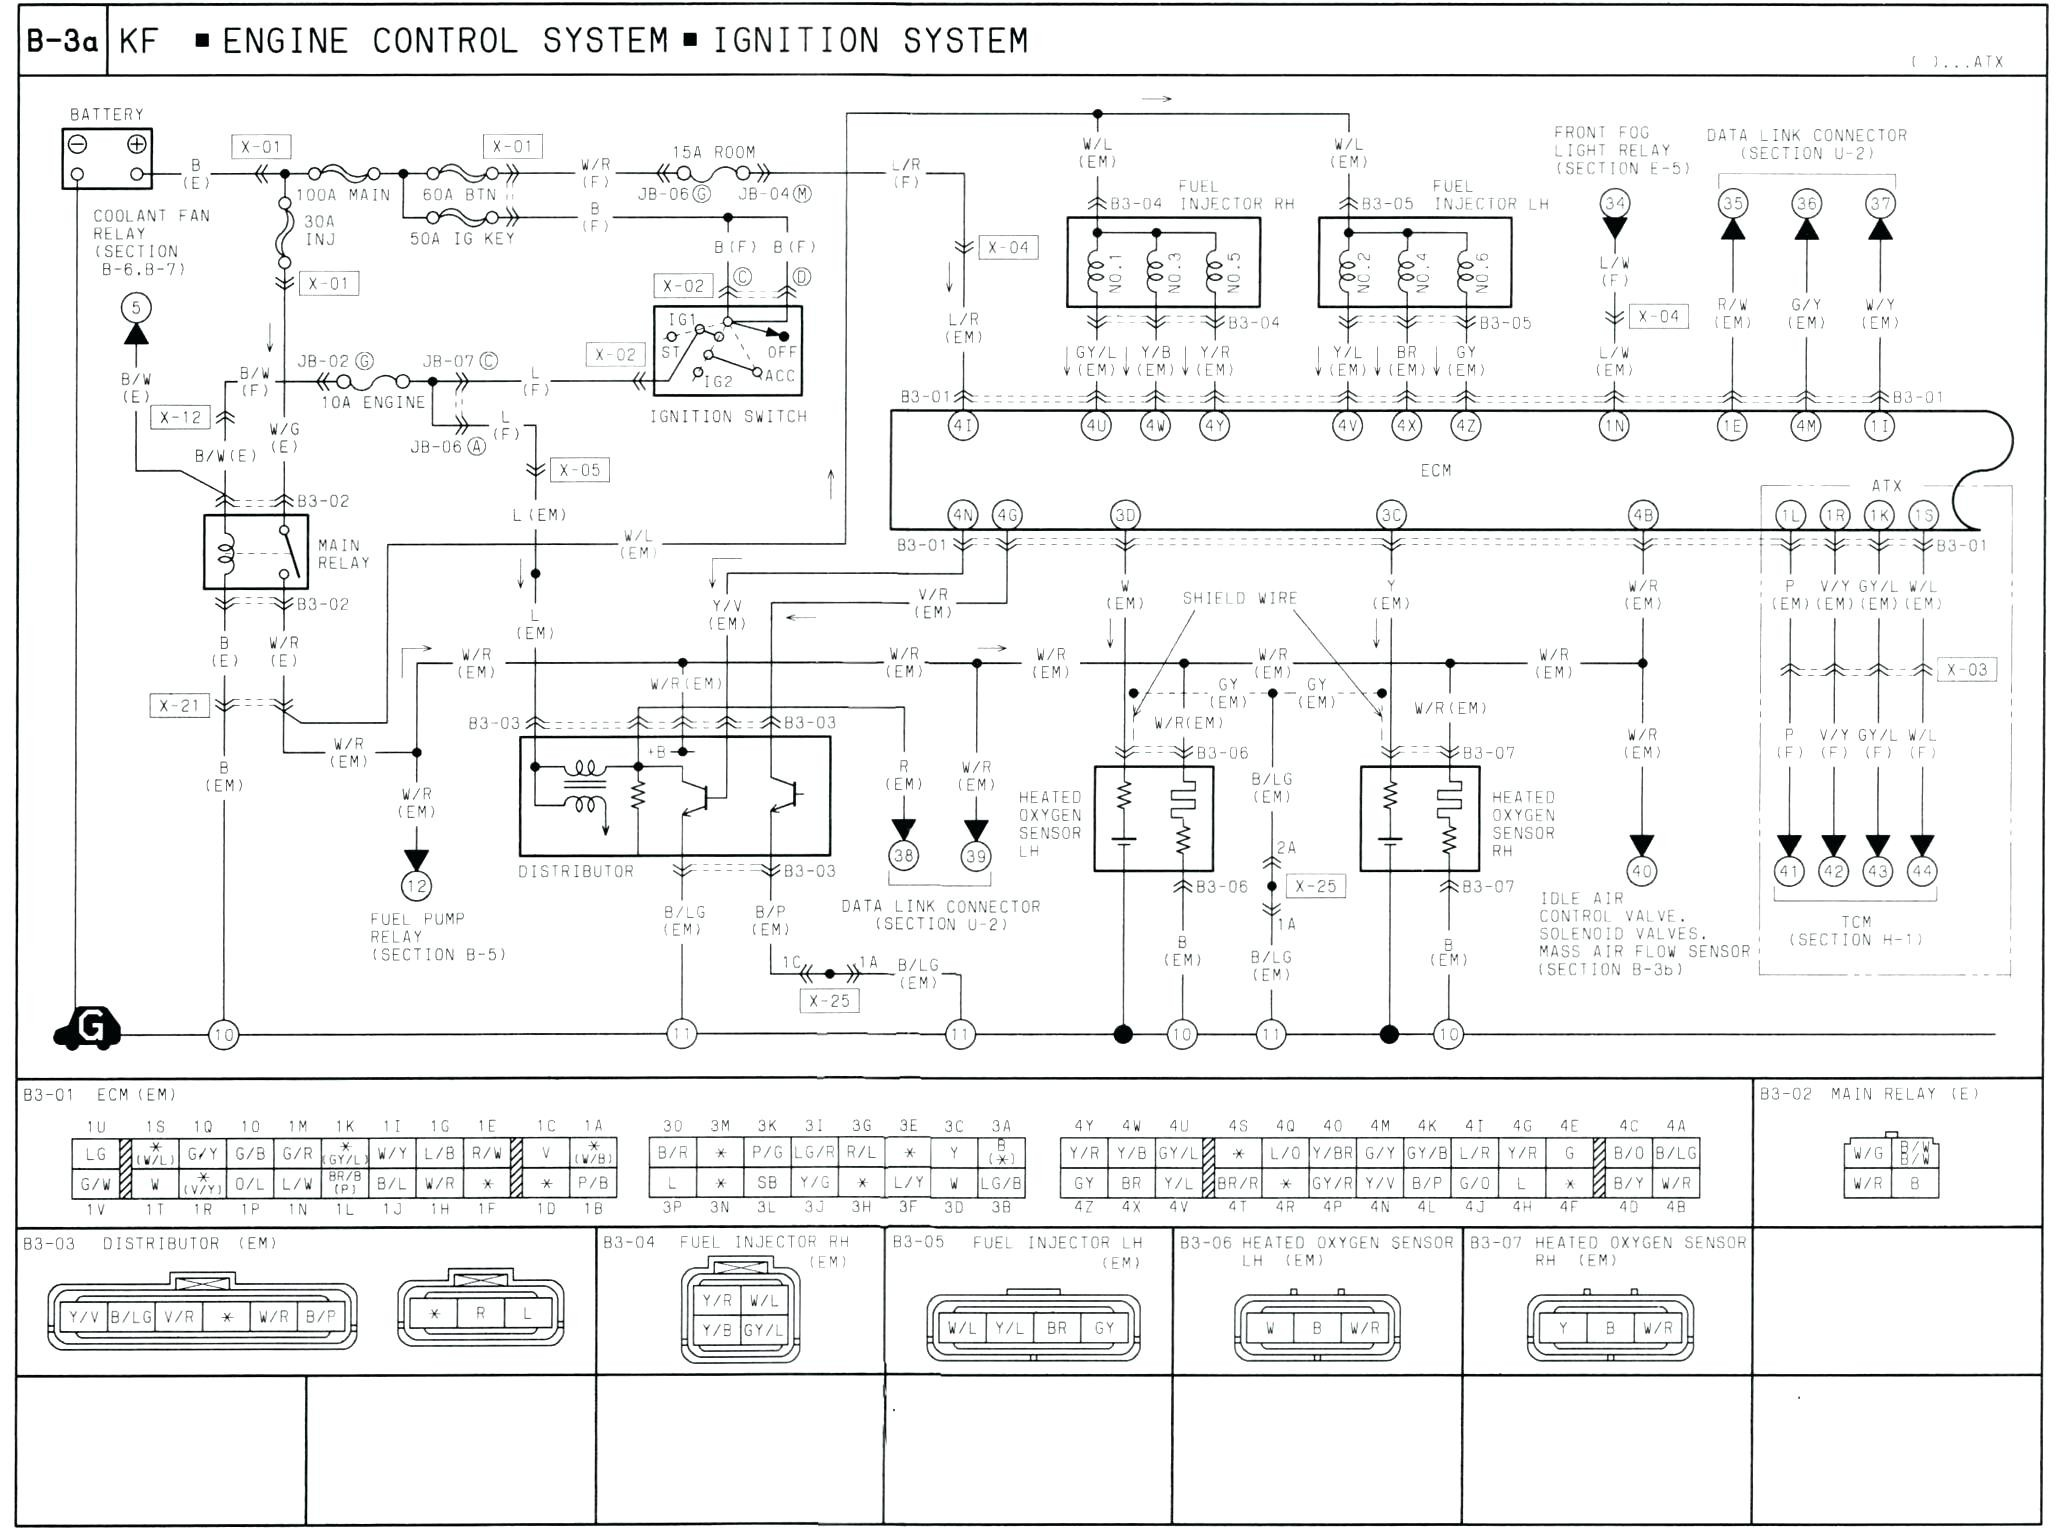 1990 mazda b2200 wiring diagram trusted wiring diagrams u2022 rh sivamuni com mazda b2200 engine parts diagram 1990 mazda b2200 engine diagram